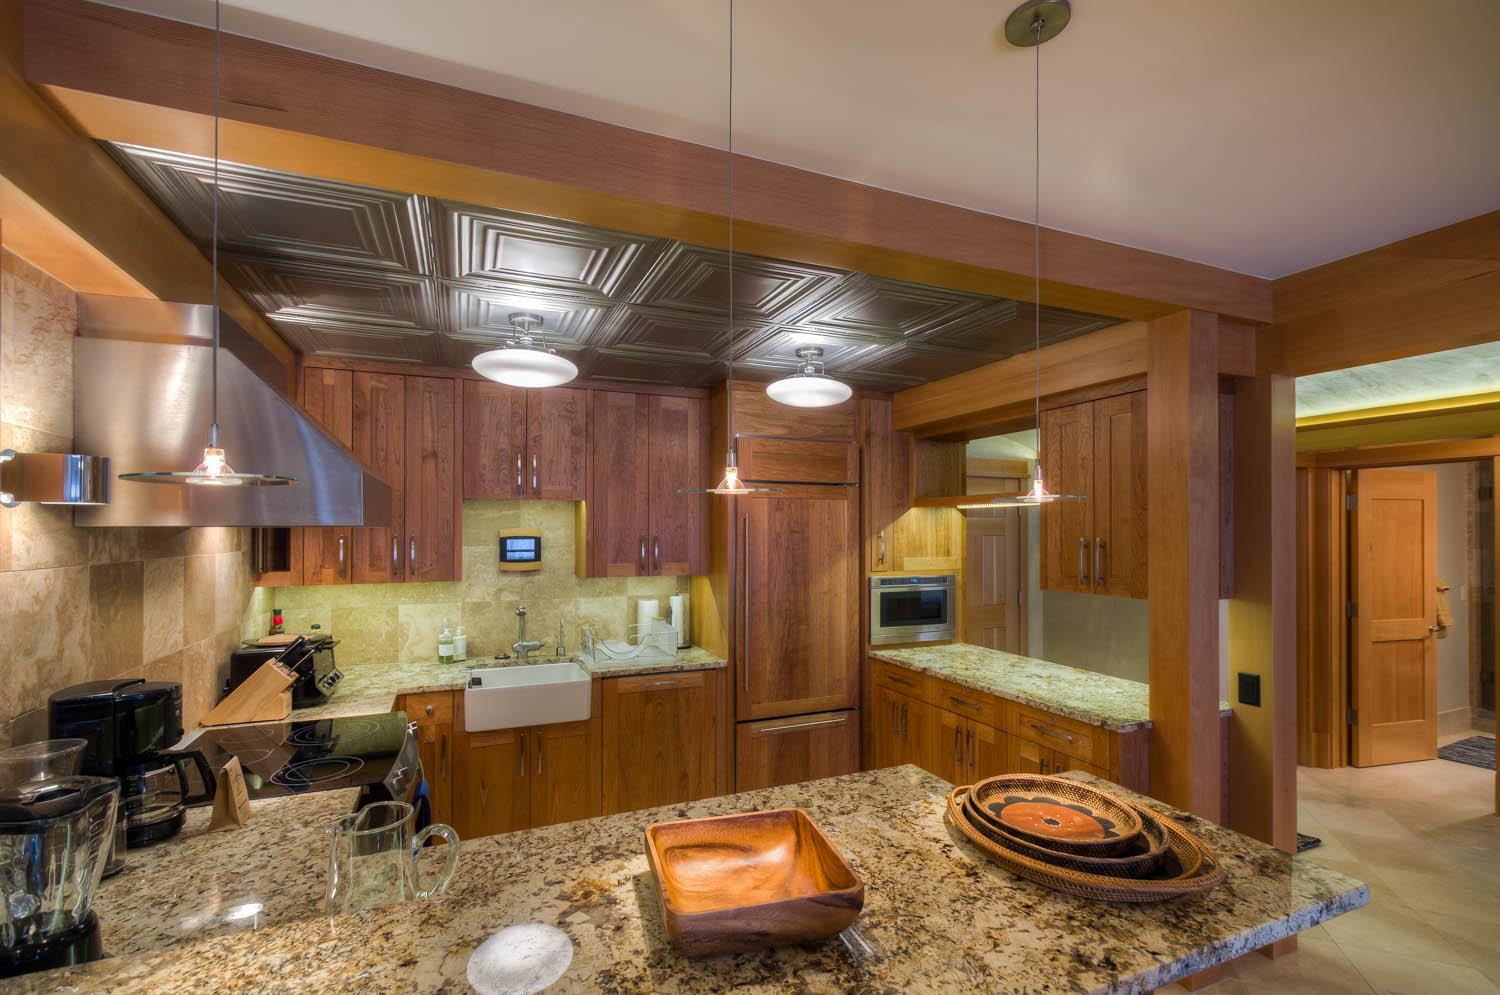 Kitchen with Refrigerator, Coffee Maker, and Oven